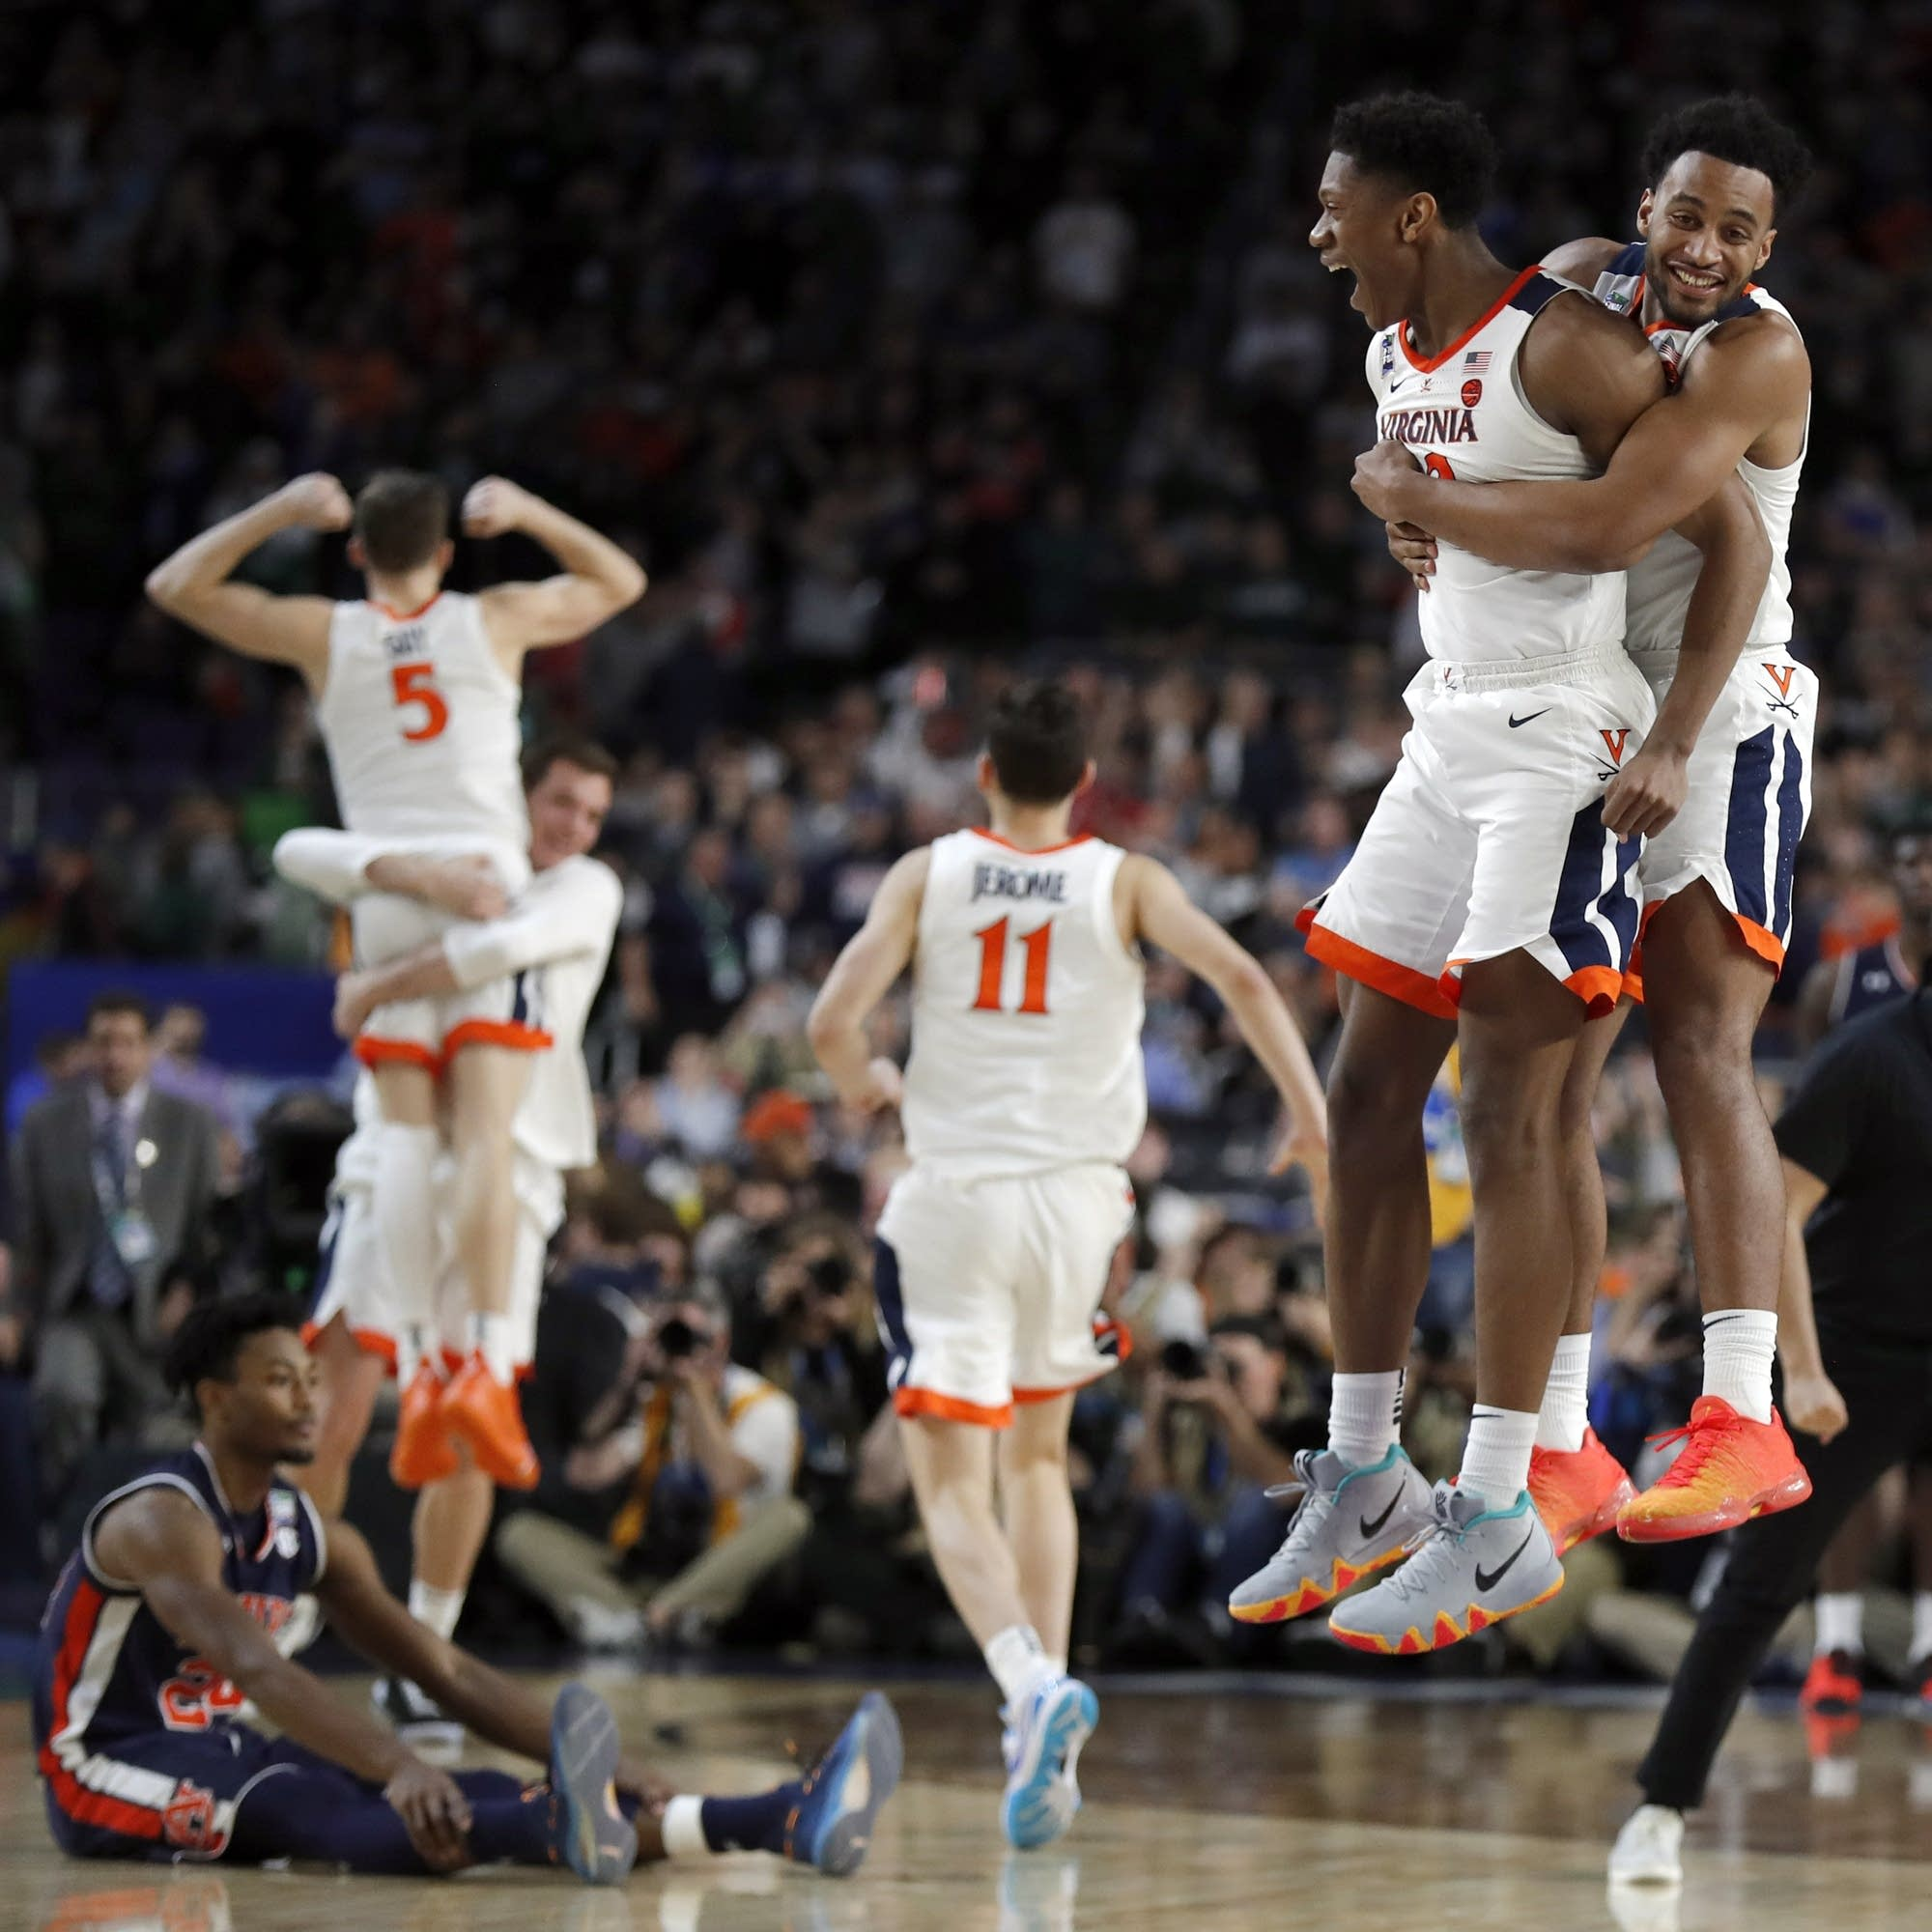 Virginia players celebrate after defeating Auburn